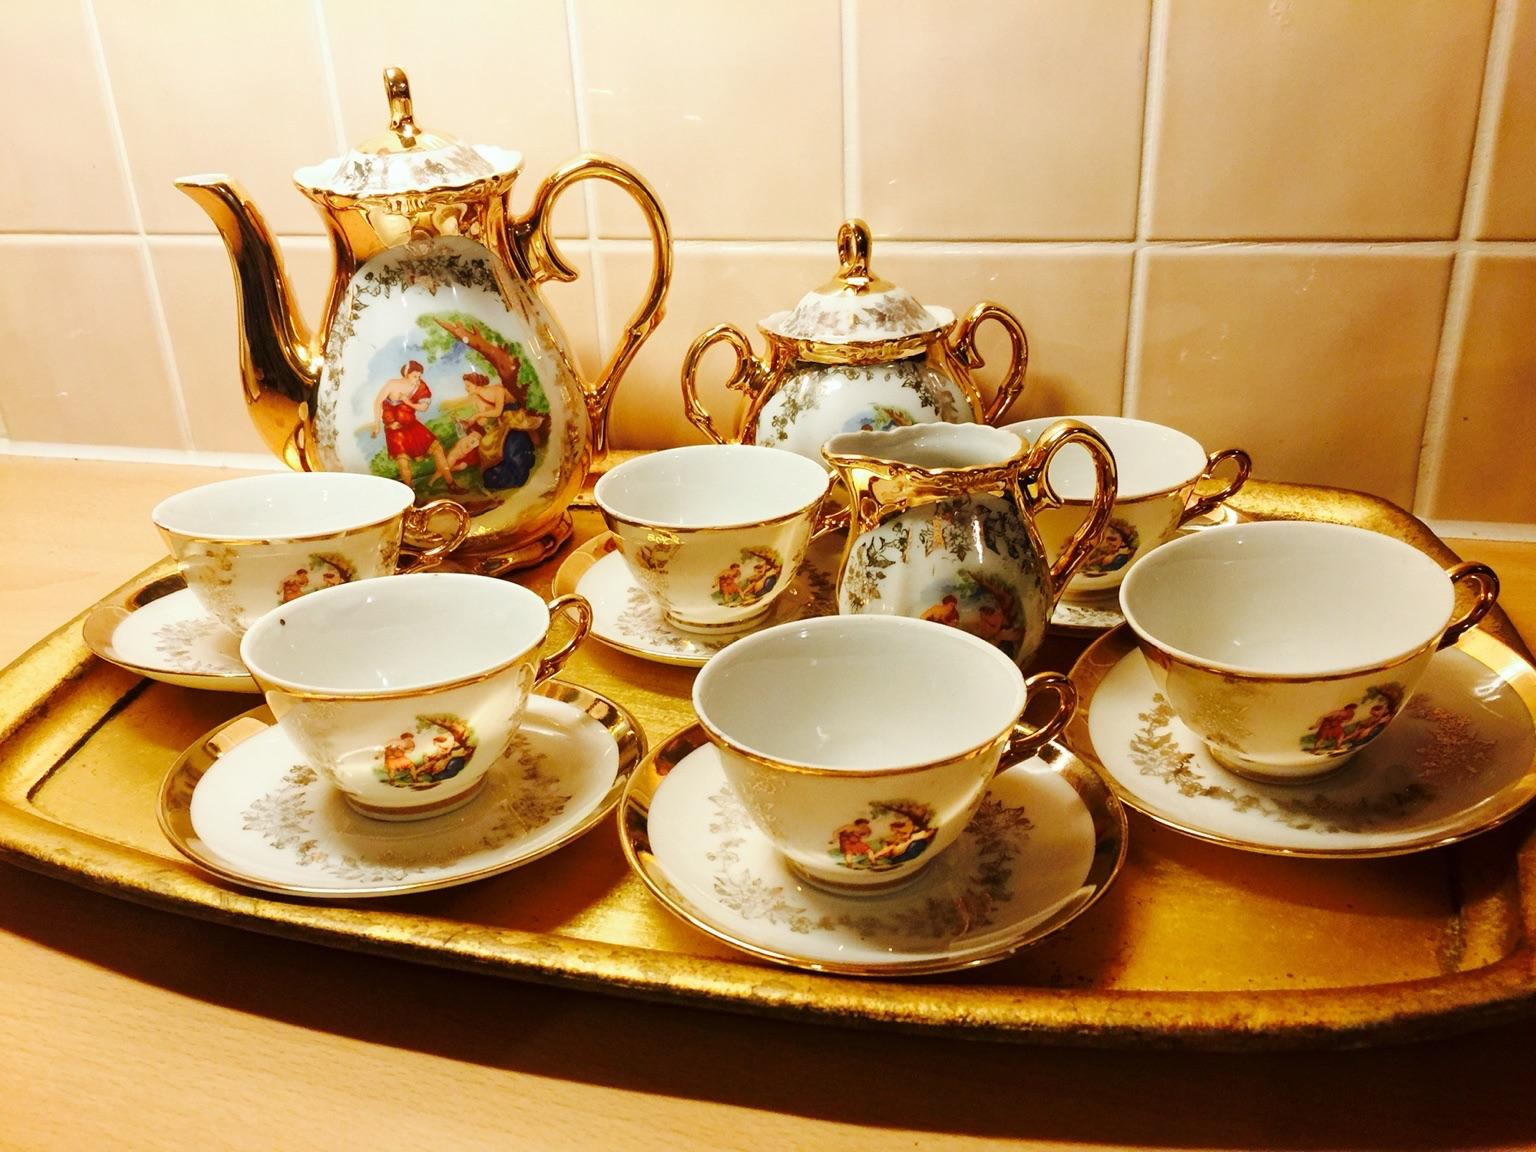 Used Bavaria Gold Plated Antique 17-piece Tea Set in Chelmsford for £ 65.00 u2013 Shpock & Used Bavaria Gold Plated Antique 17-piece Tea Set in Chelmsford for ...